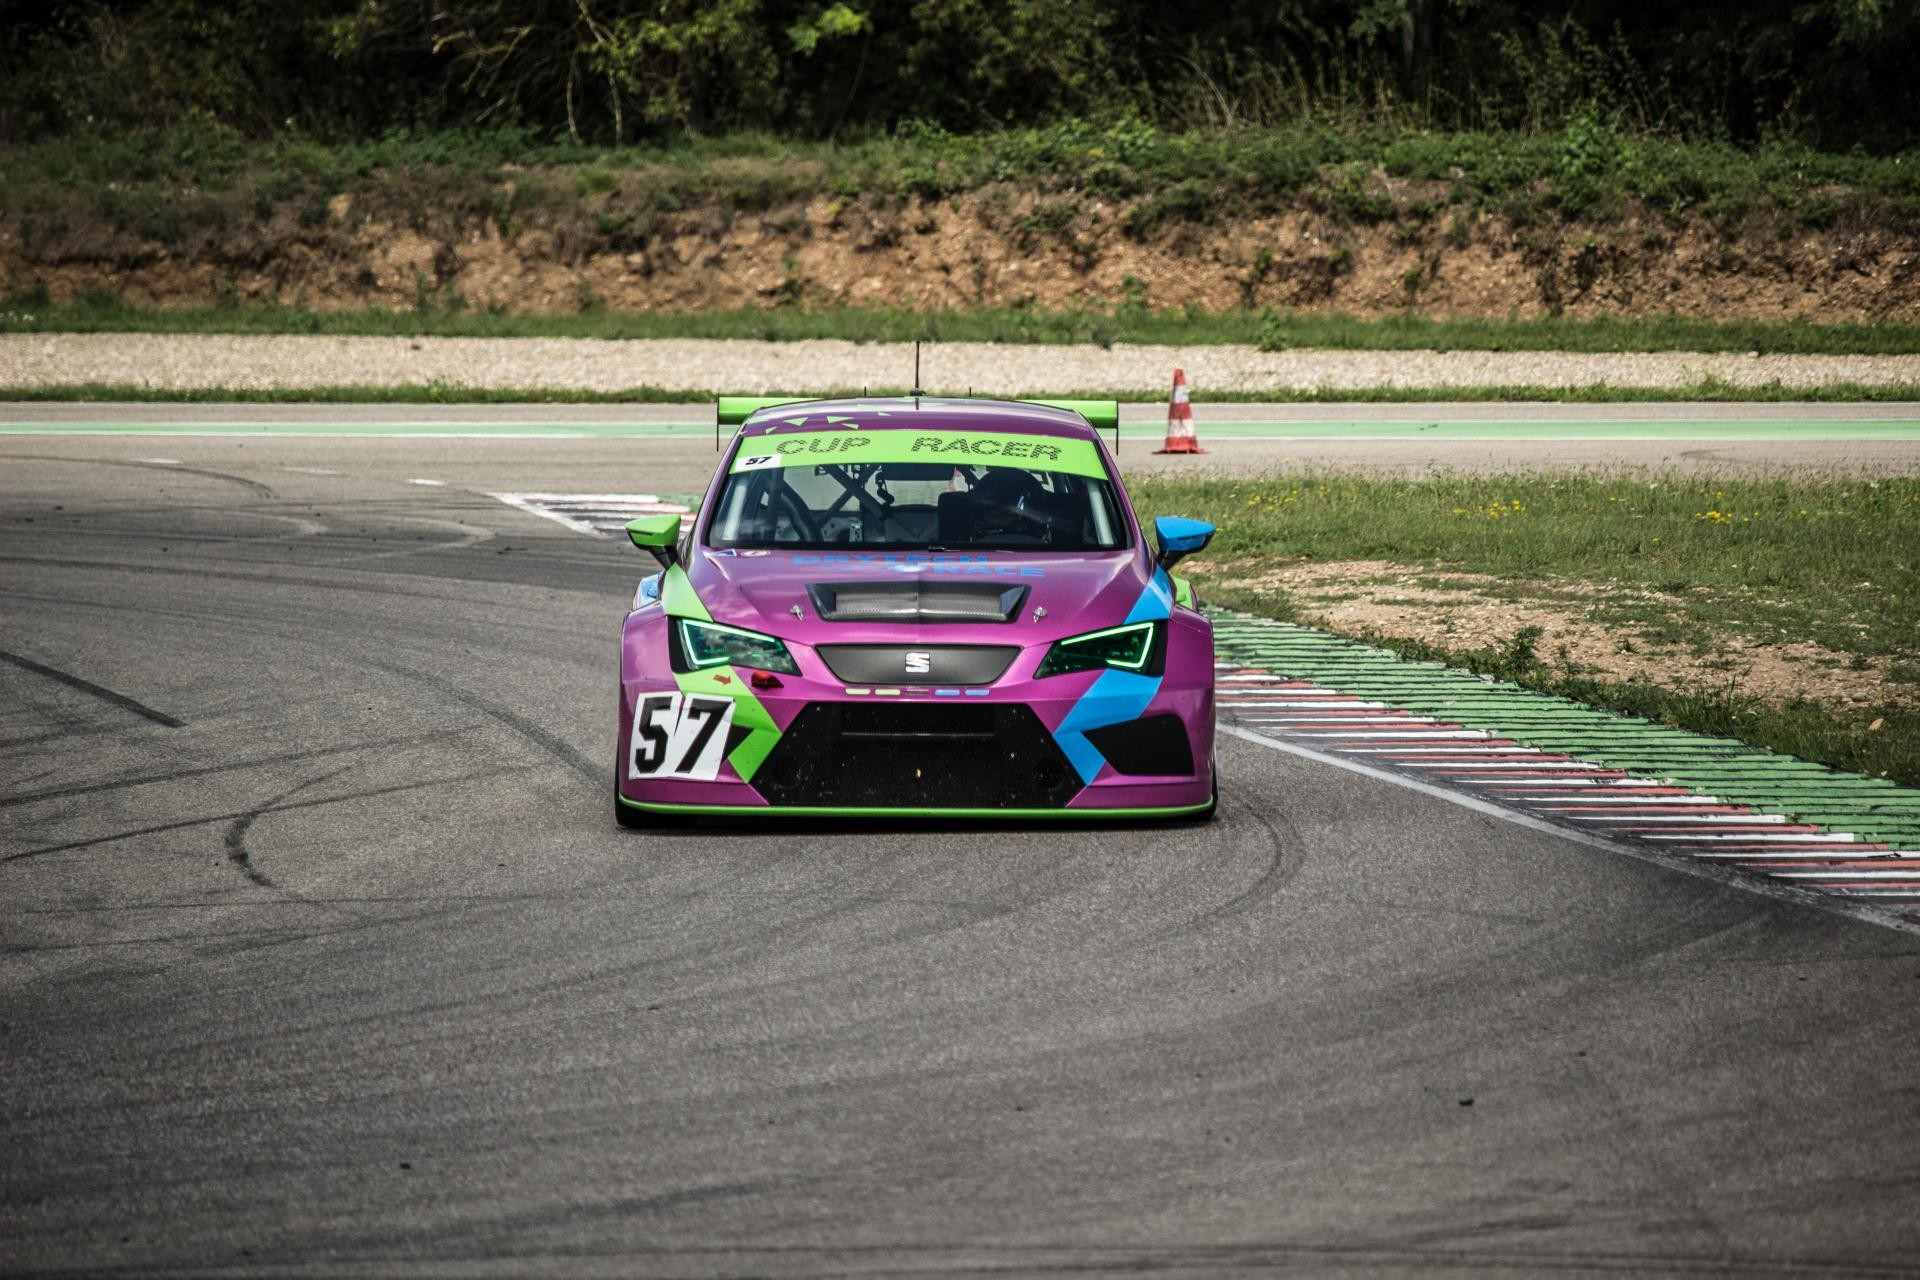 28072017-IMG_8352 - Seat Leon Cup Racer m